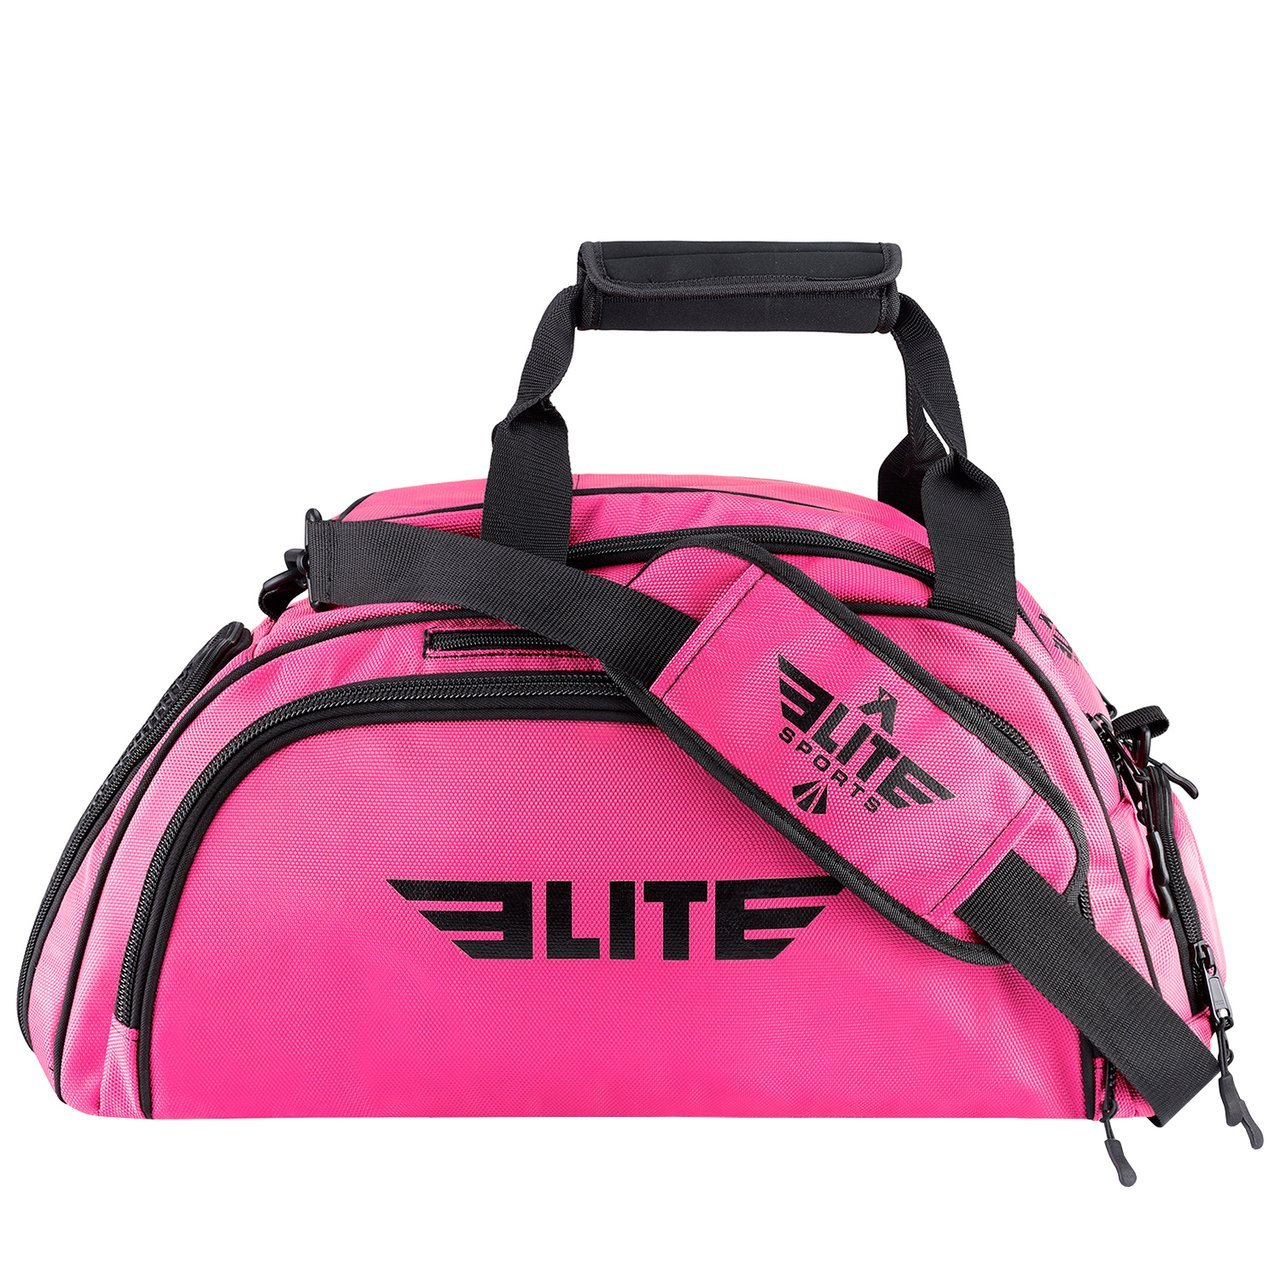 Elite Sports Warrior Series Pink Large Duffel Boxing Gear Gym Bag & Backpack